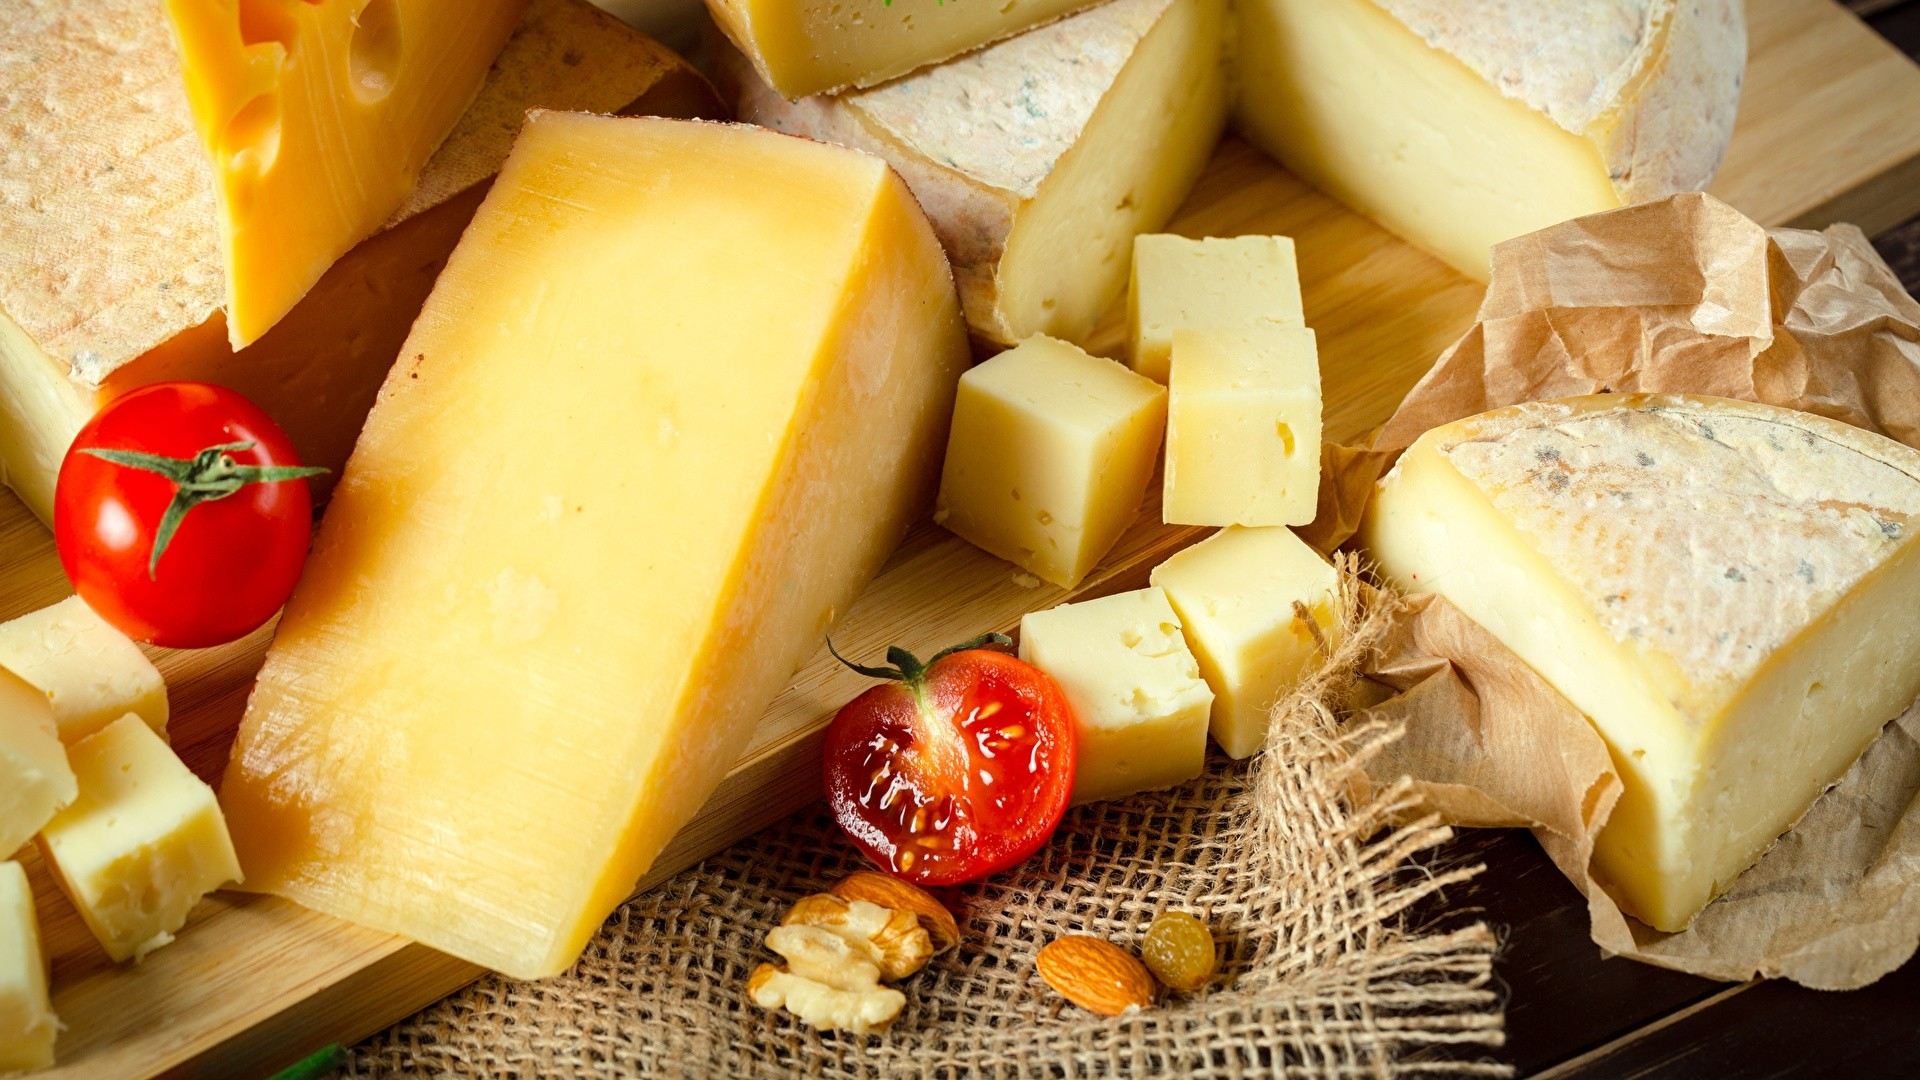 Cheese Wallpaper Download